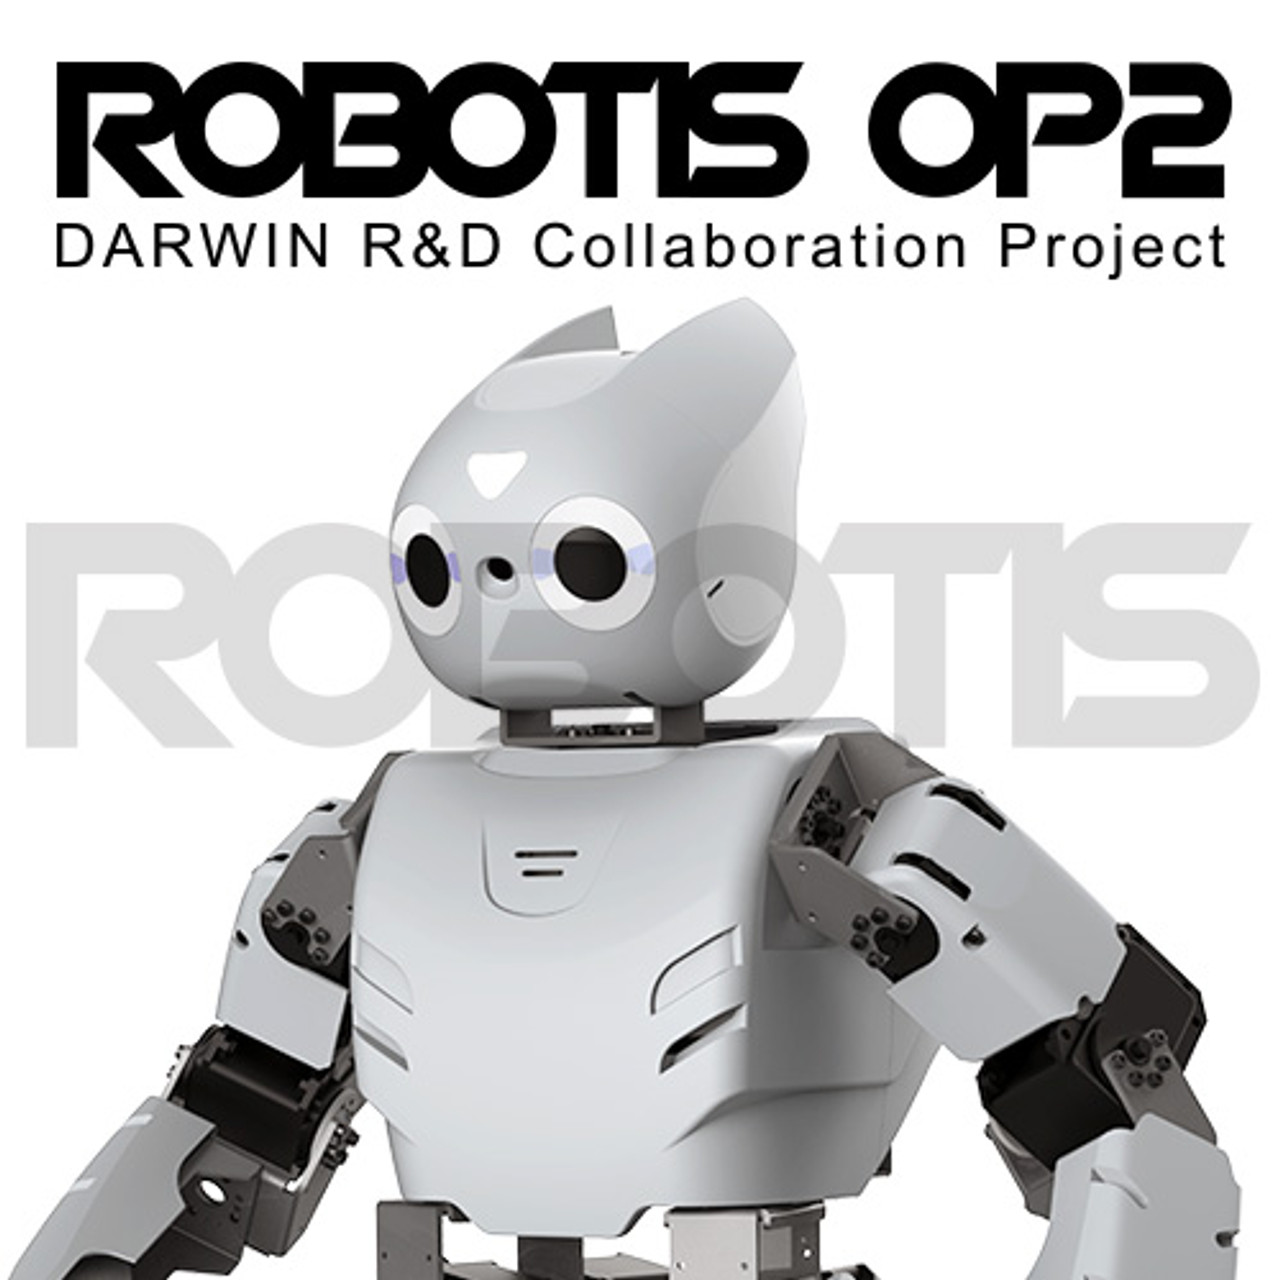 The delivery lead time for the new ROBOTIS OP2 is 6 weeks!